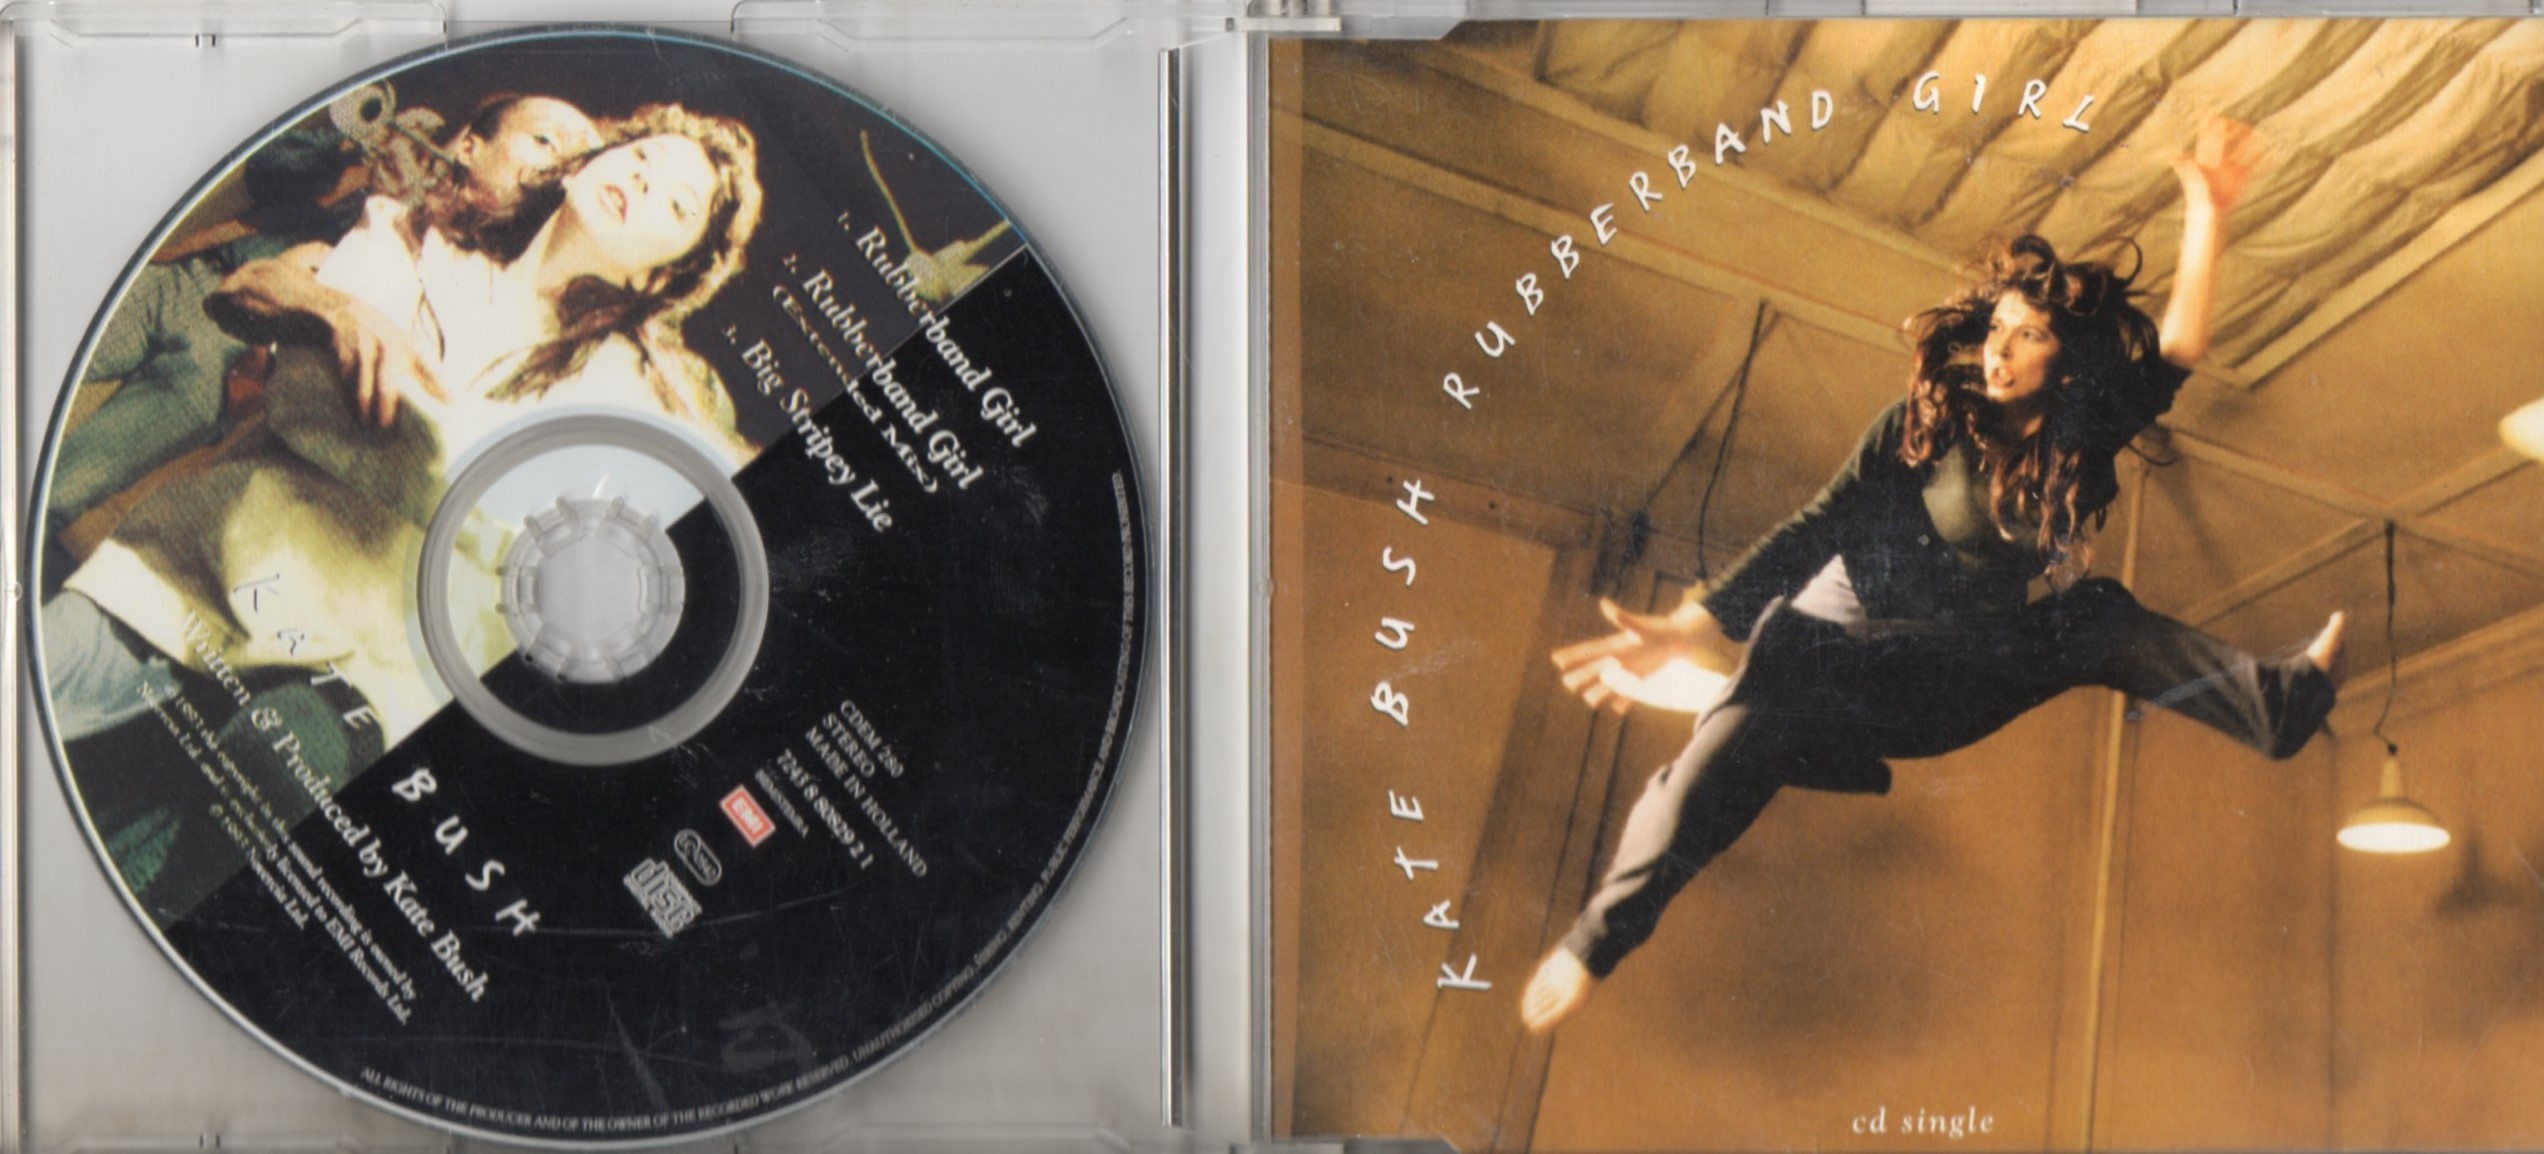 Kate BUSH - Rubberband Girl 3-track Jewel Case